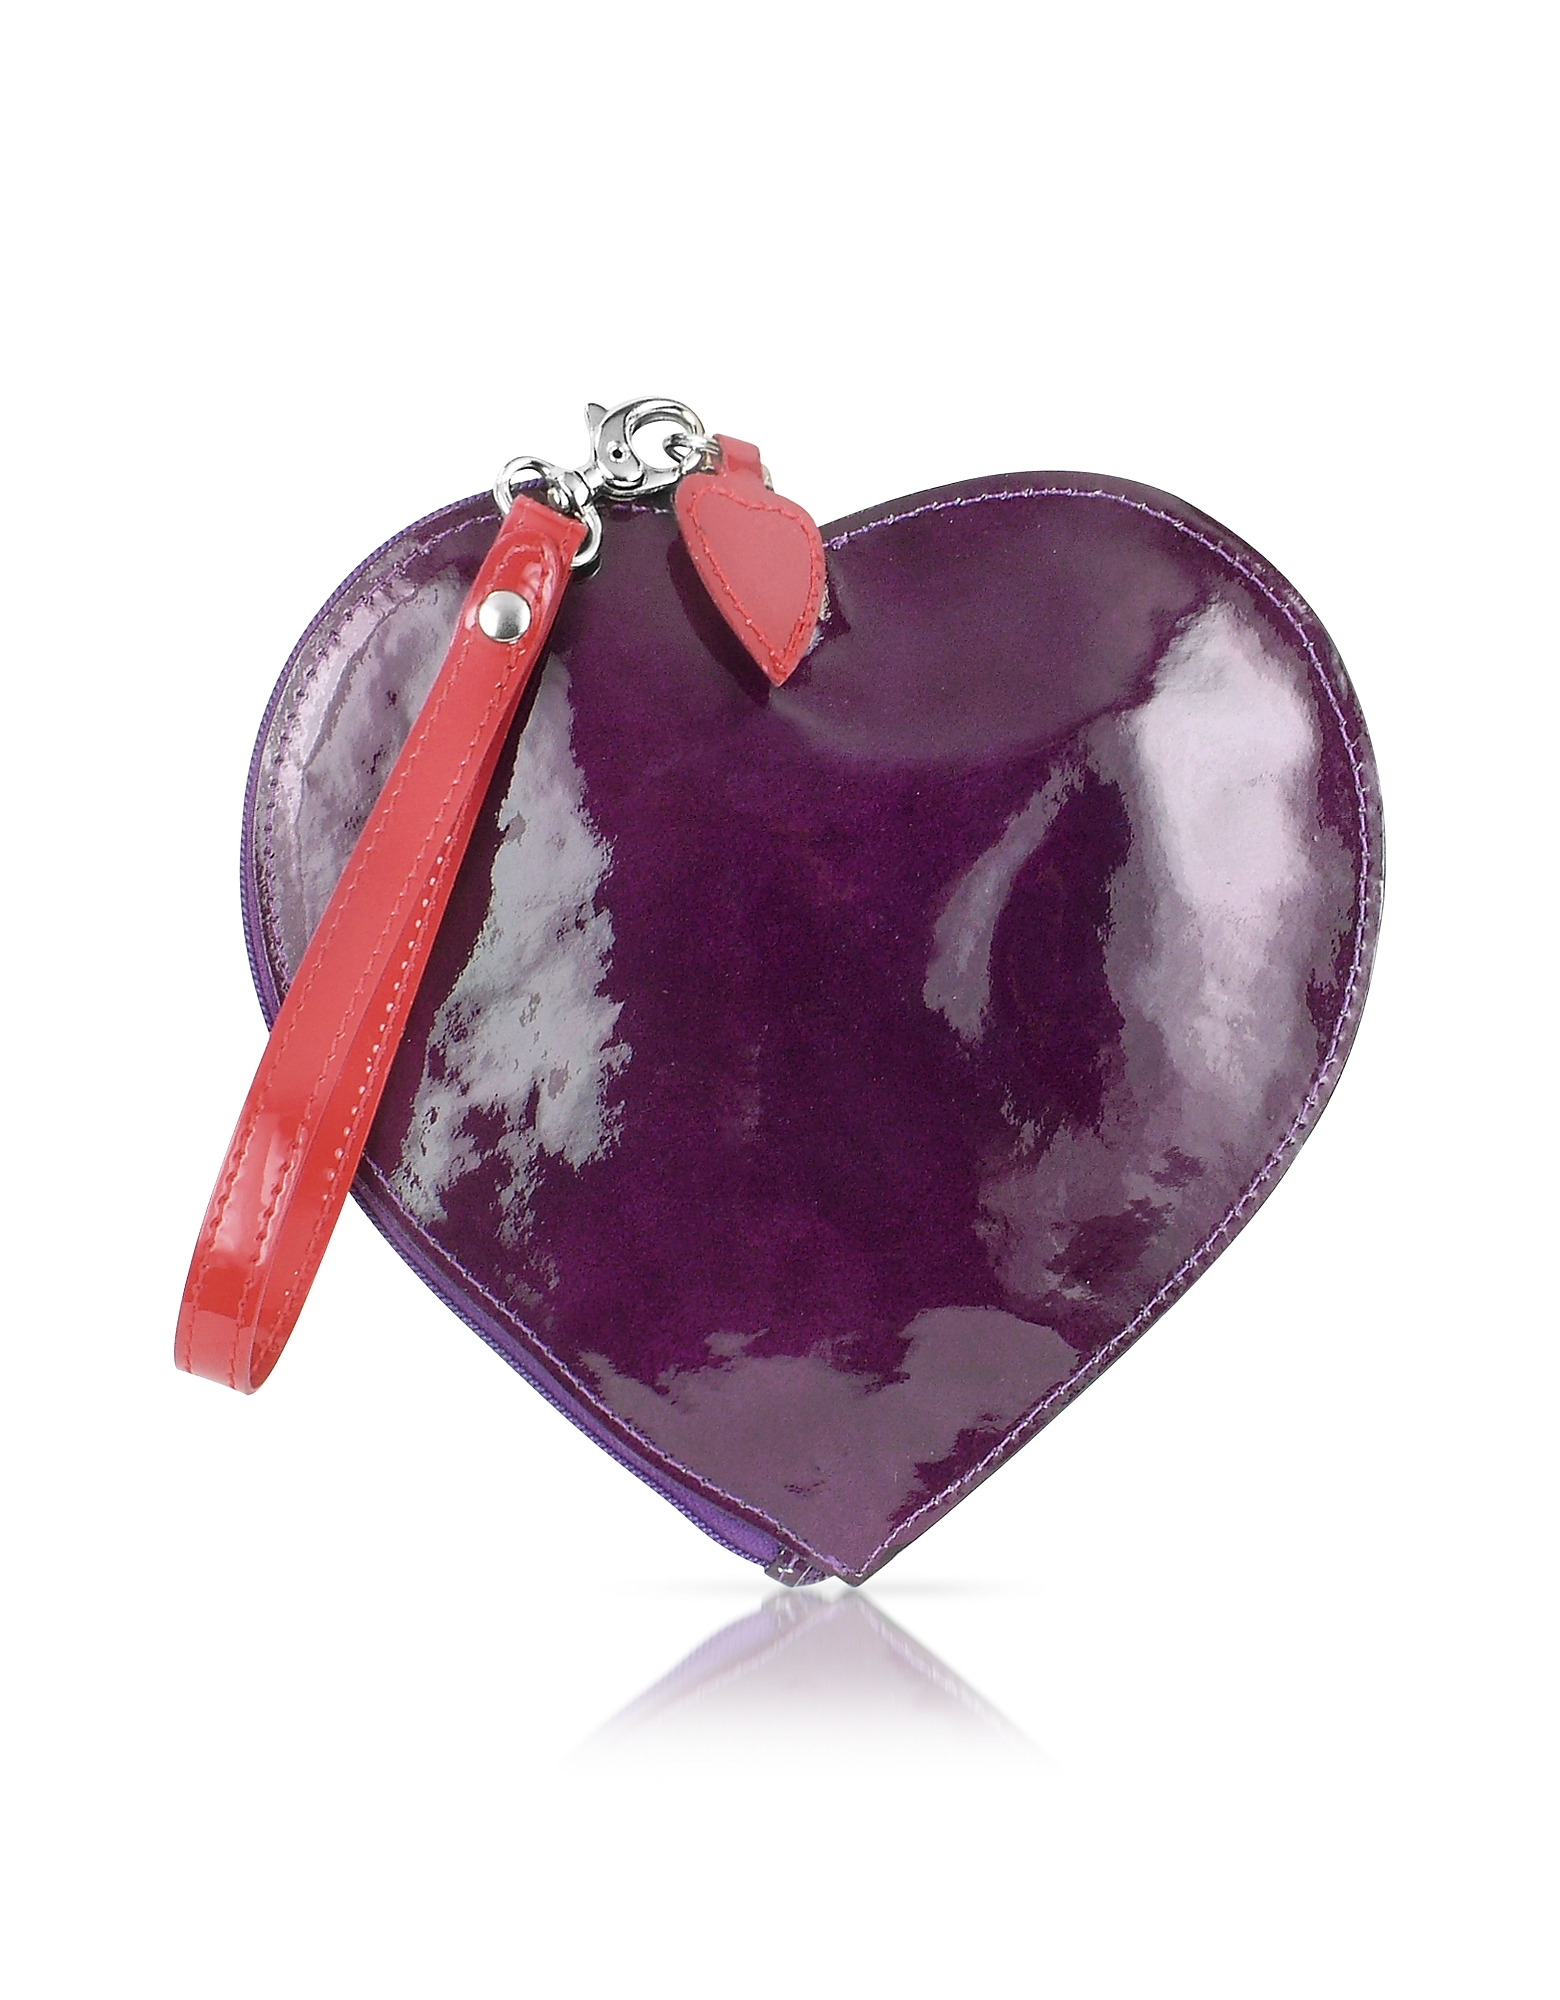 Fontanelli Small Leather Goods, Patent Leather Heart Coin Purse